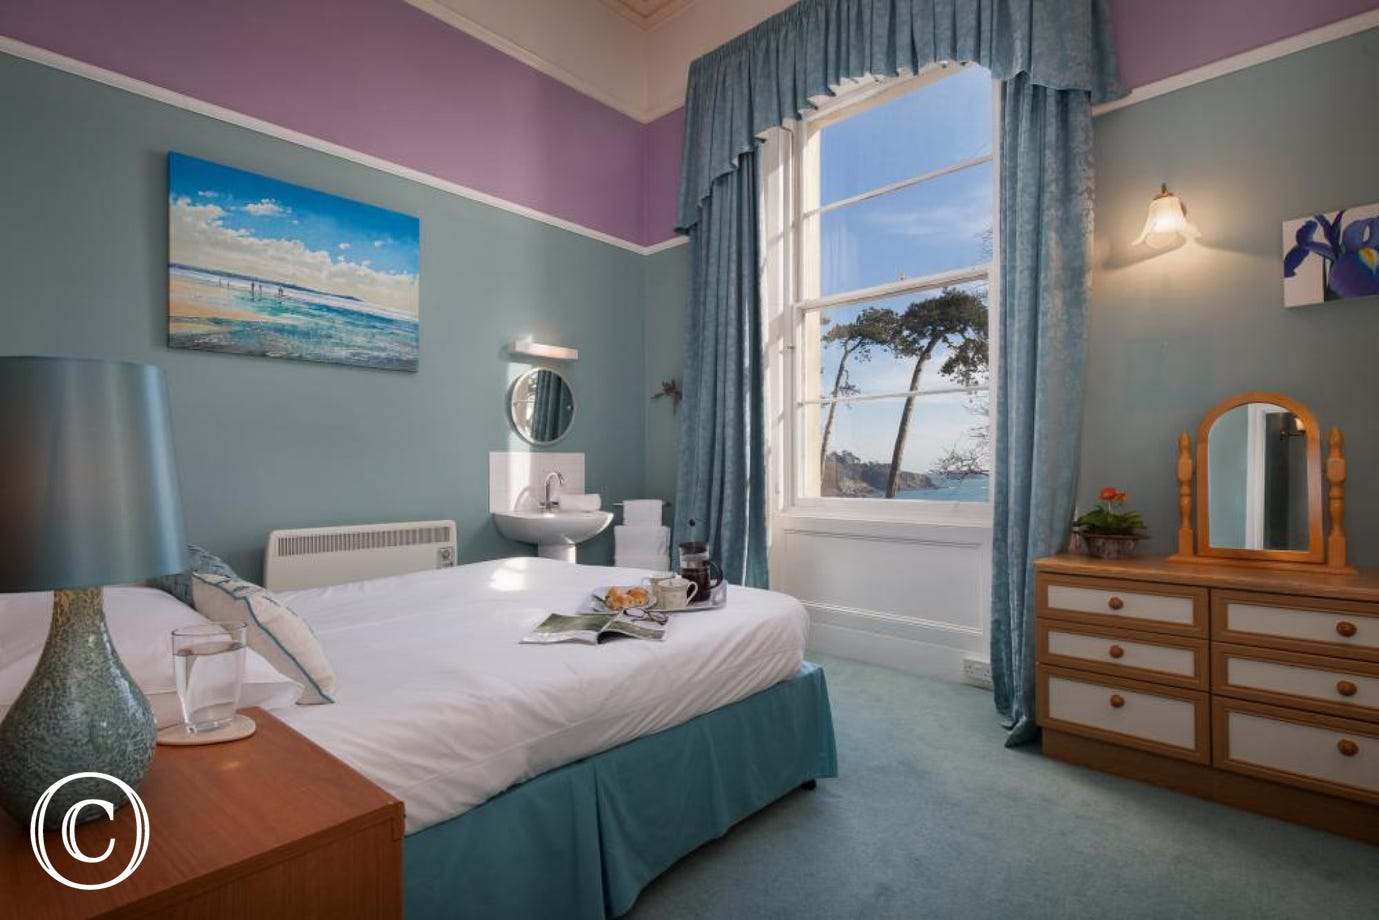 wake up to views over the Torquay coastline and Meadfoot Beach